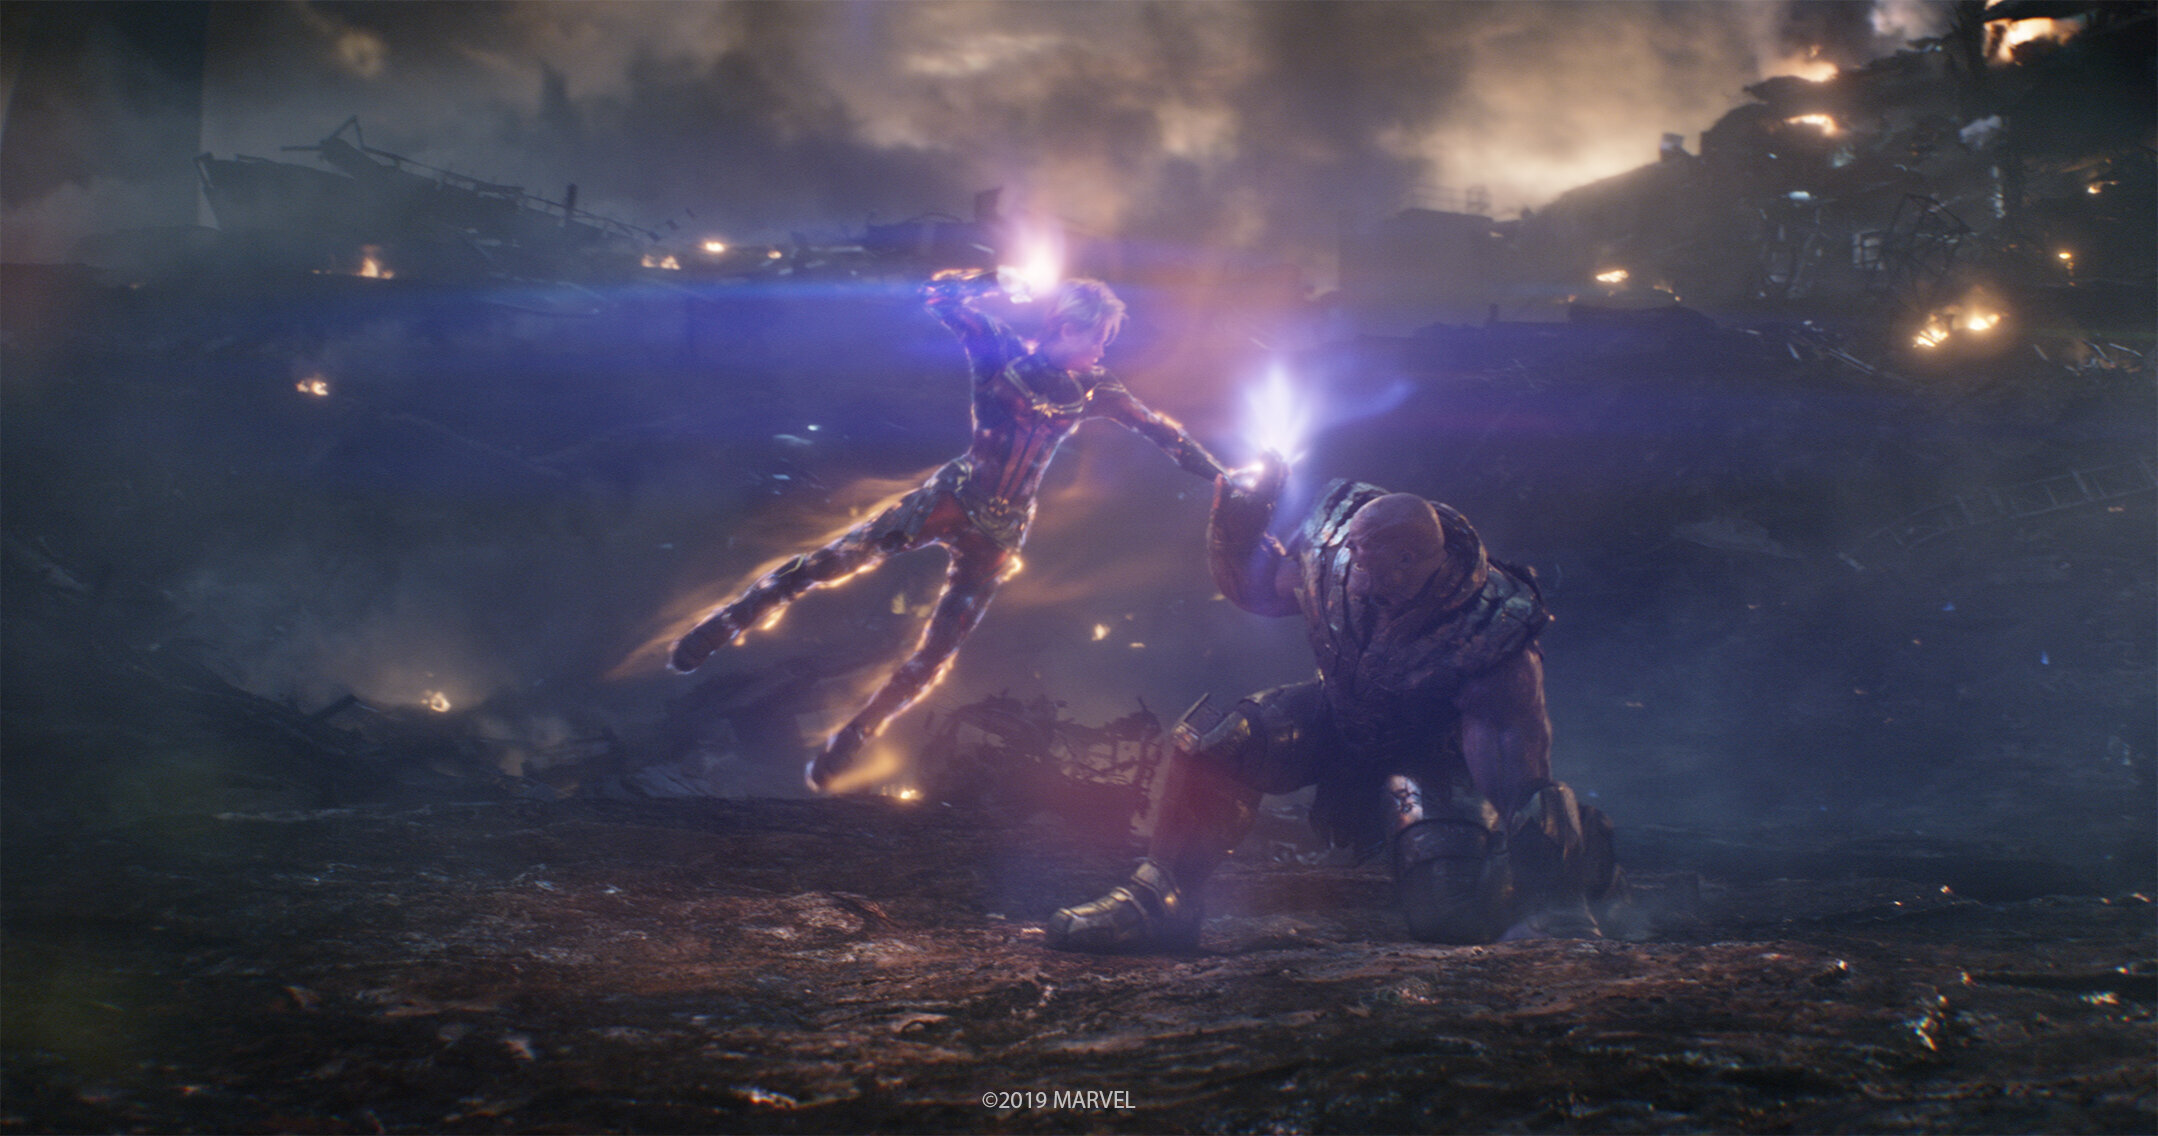 Unduh 800+ Wallpaper Avengers Endgame For Pc HD Terbaru